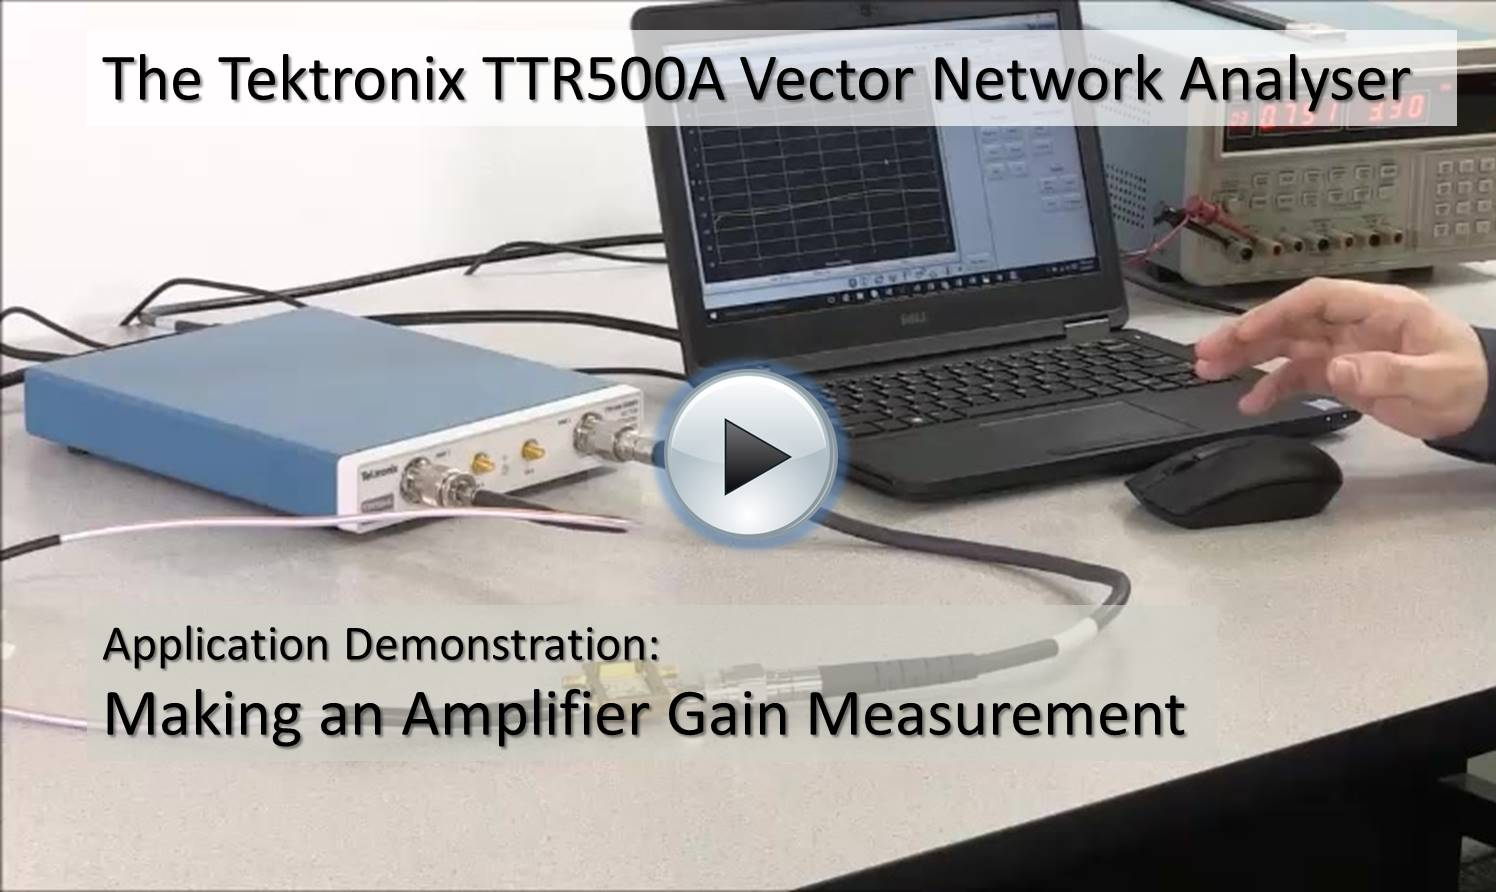 TTR500A_Apps_Demo_Making_an_Amplifier_Gain_Measurement_thumb